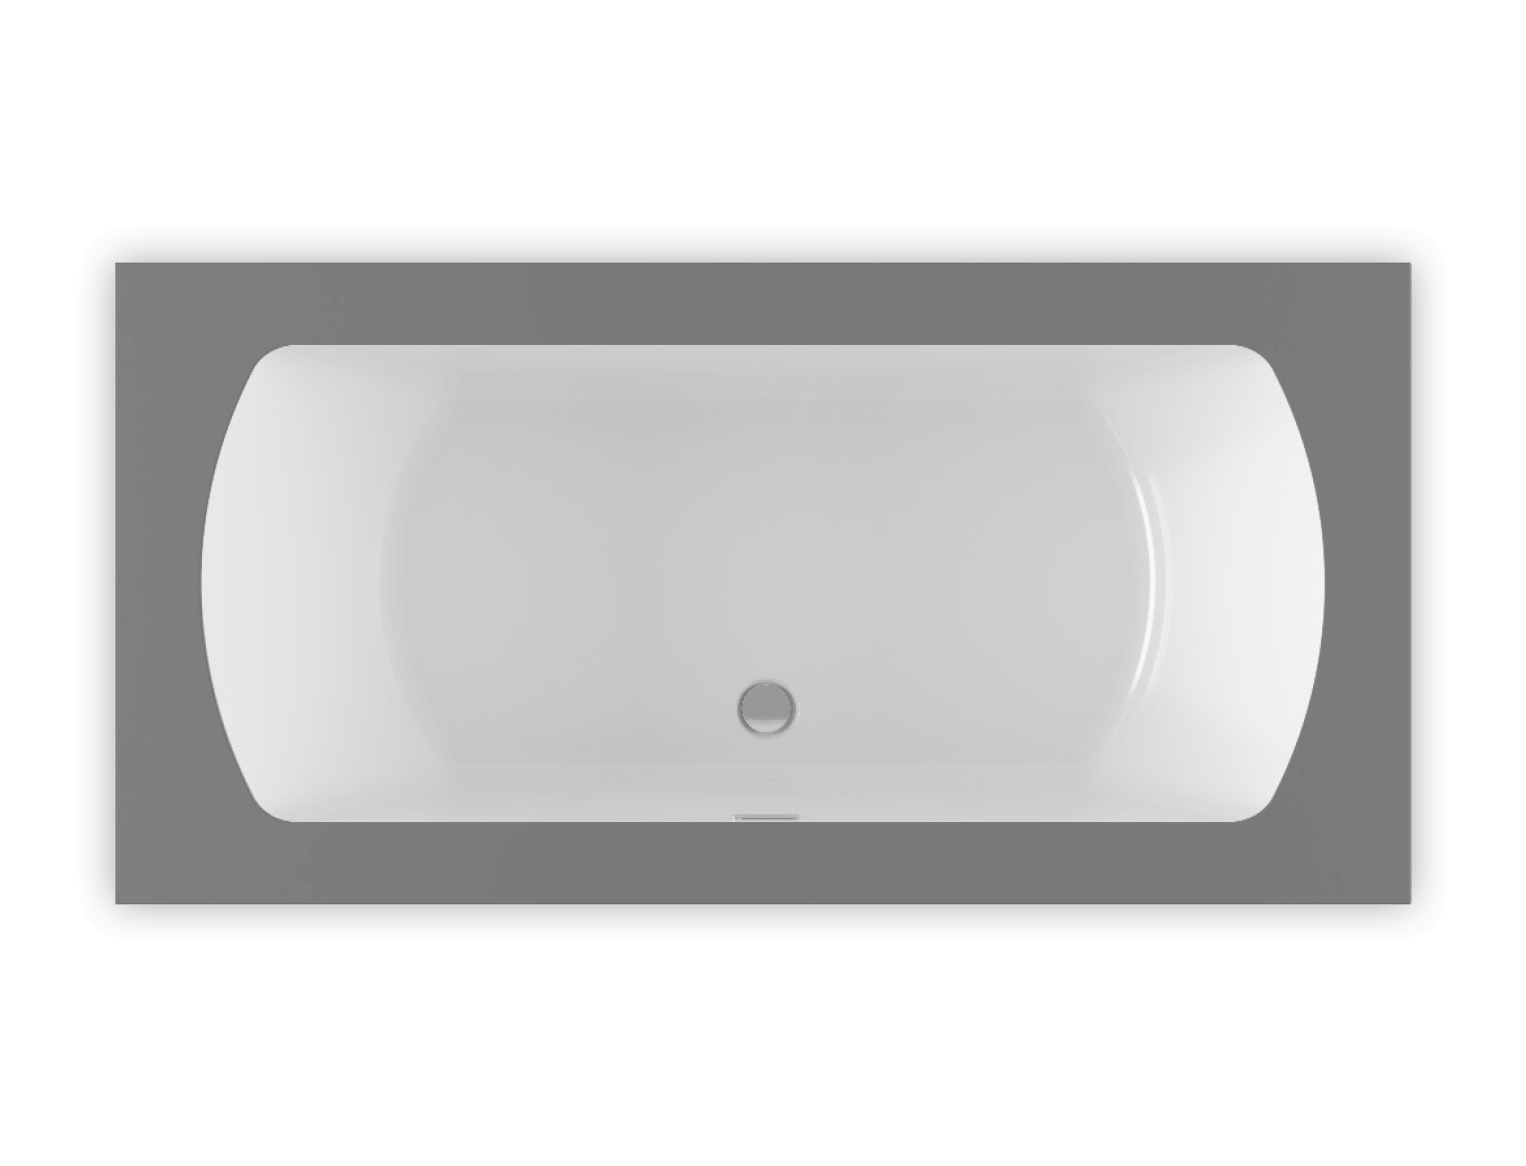 Monarch 7236 air jet bathtub for your modern bathroom